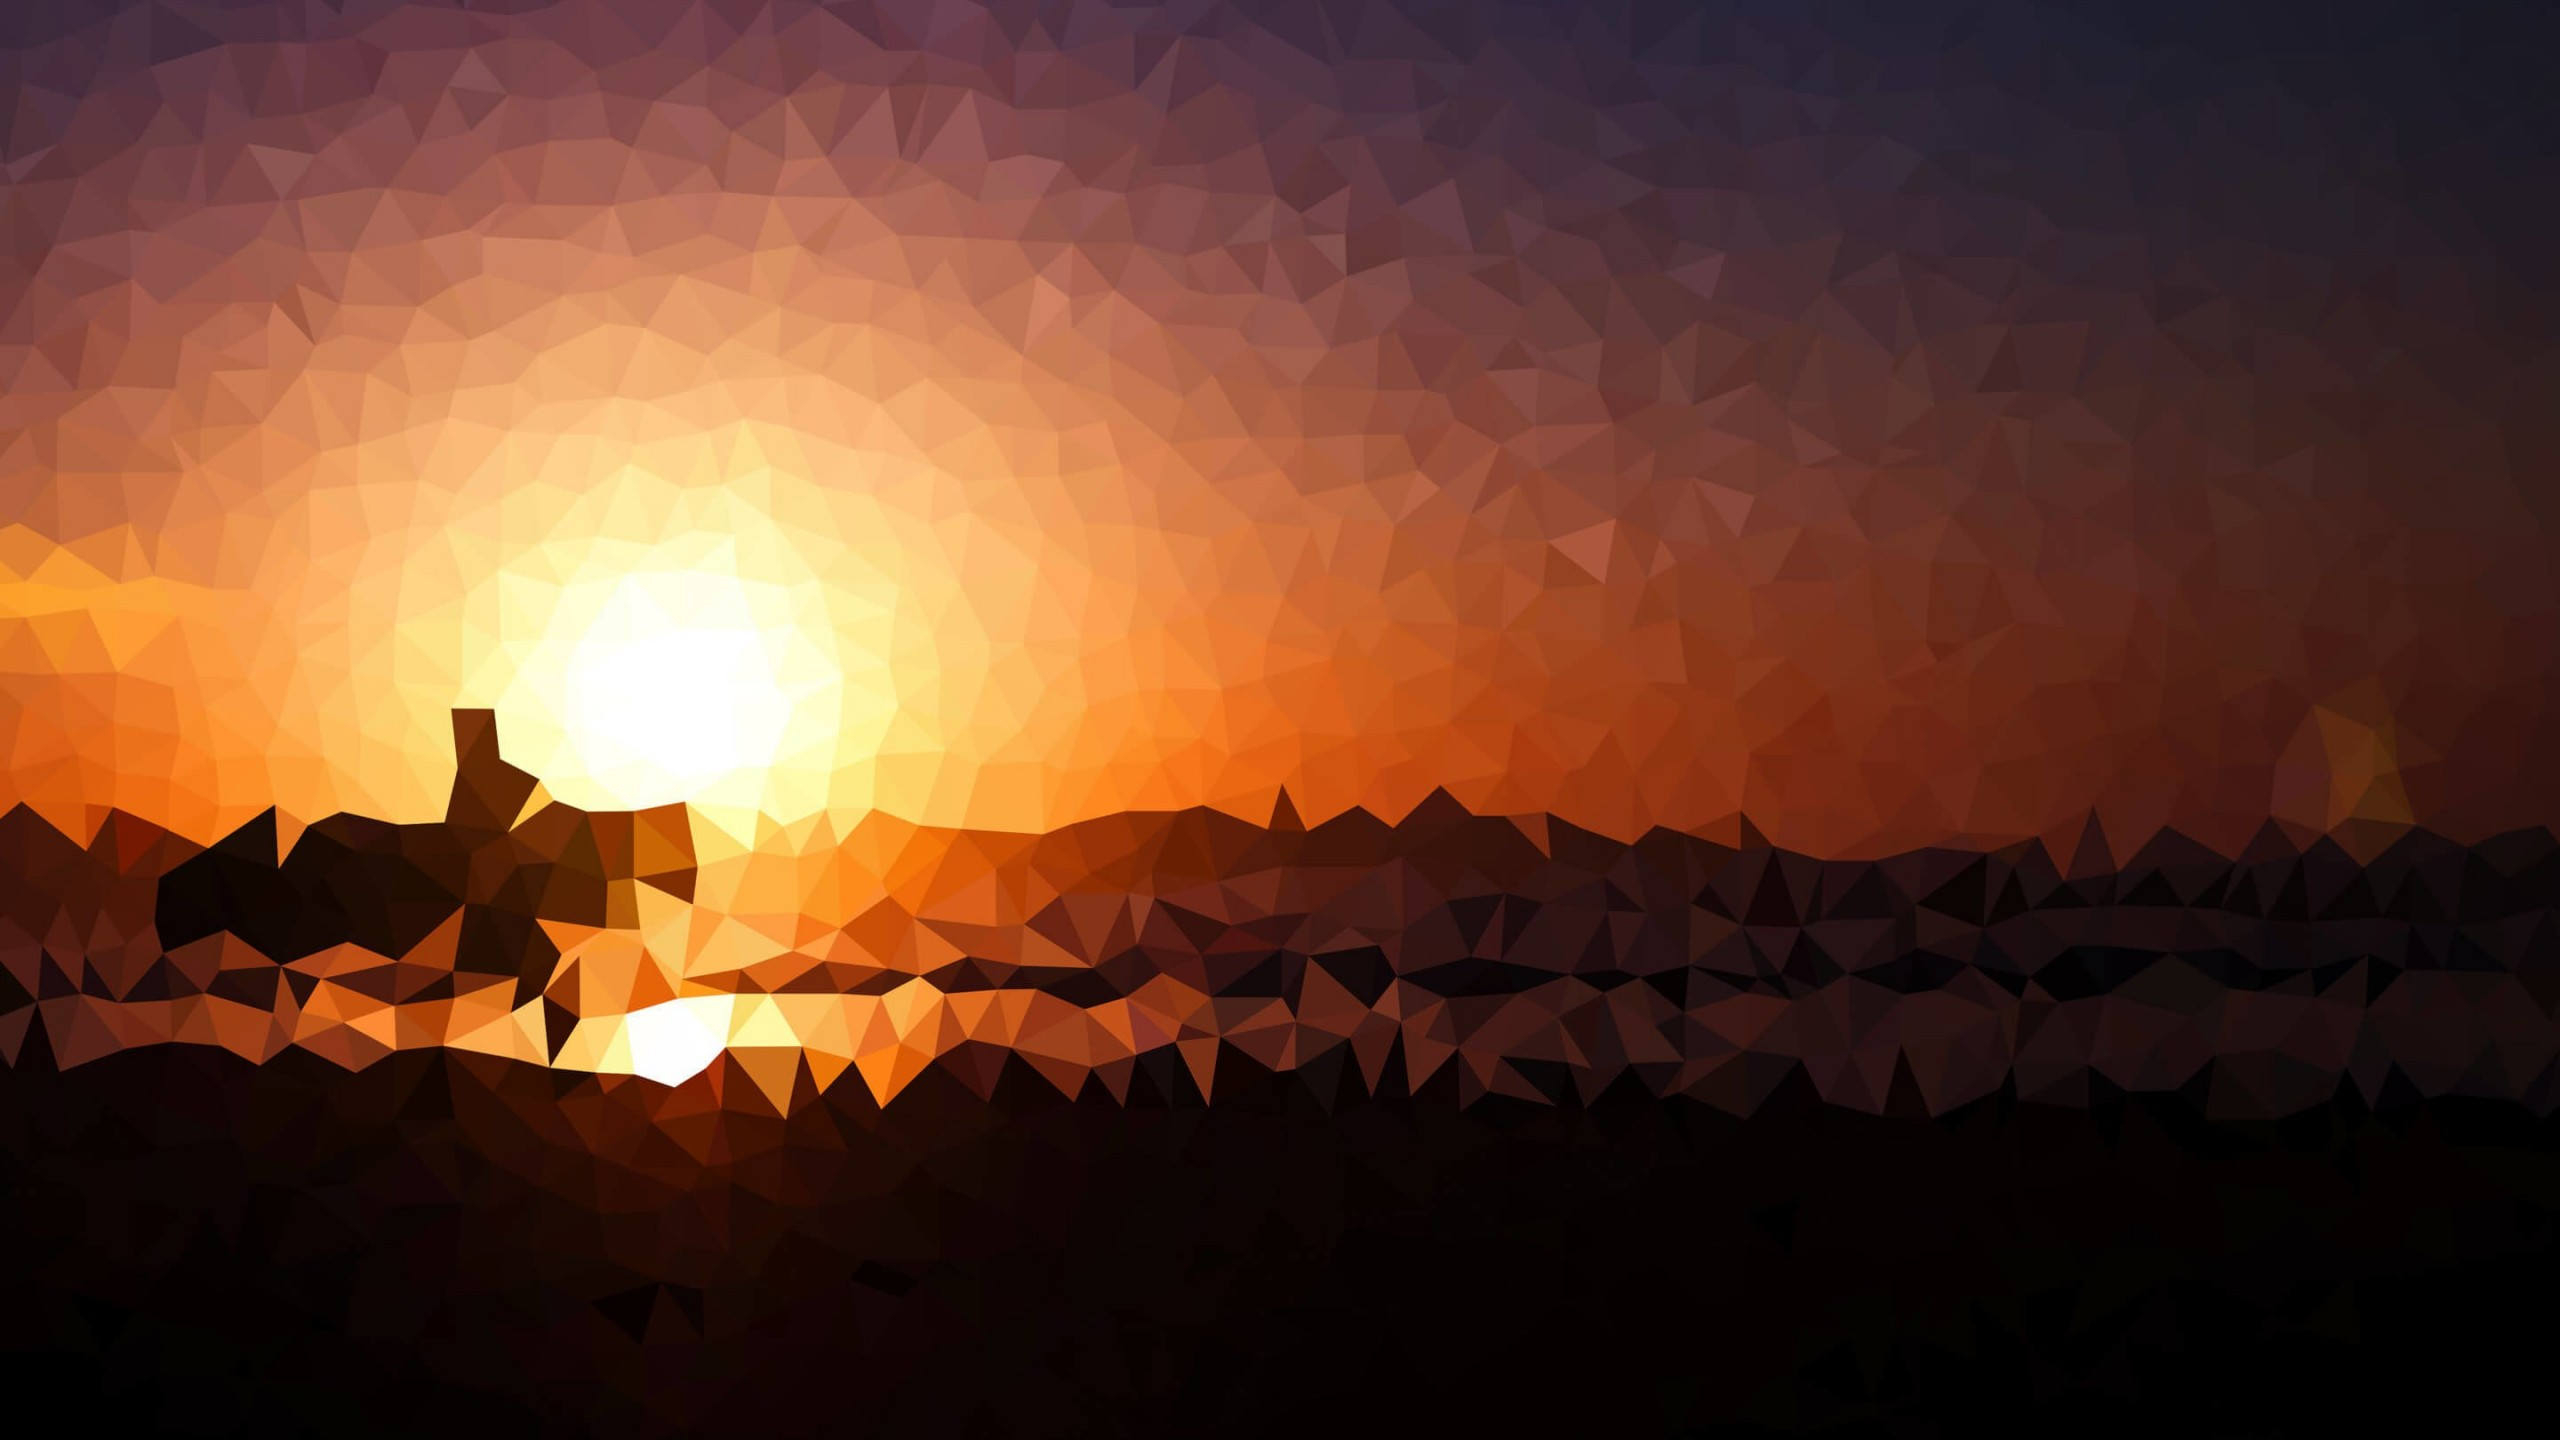 Low Poly Sunset Wallpaper for Desktop 2560x1440